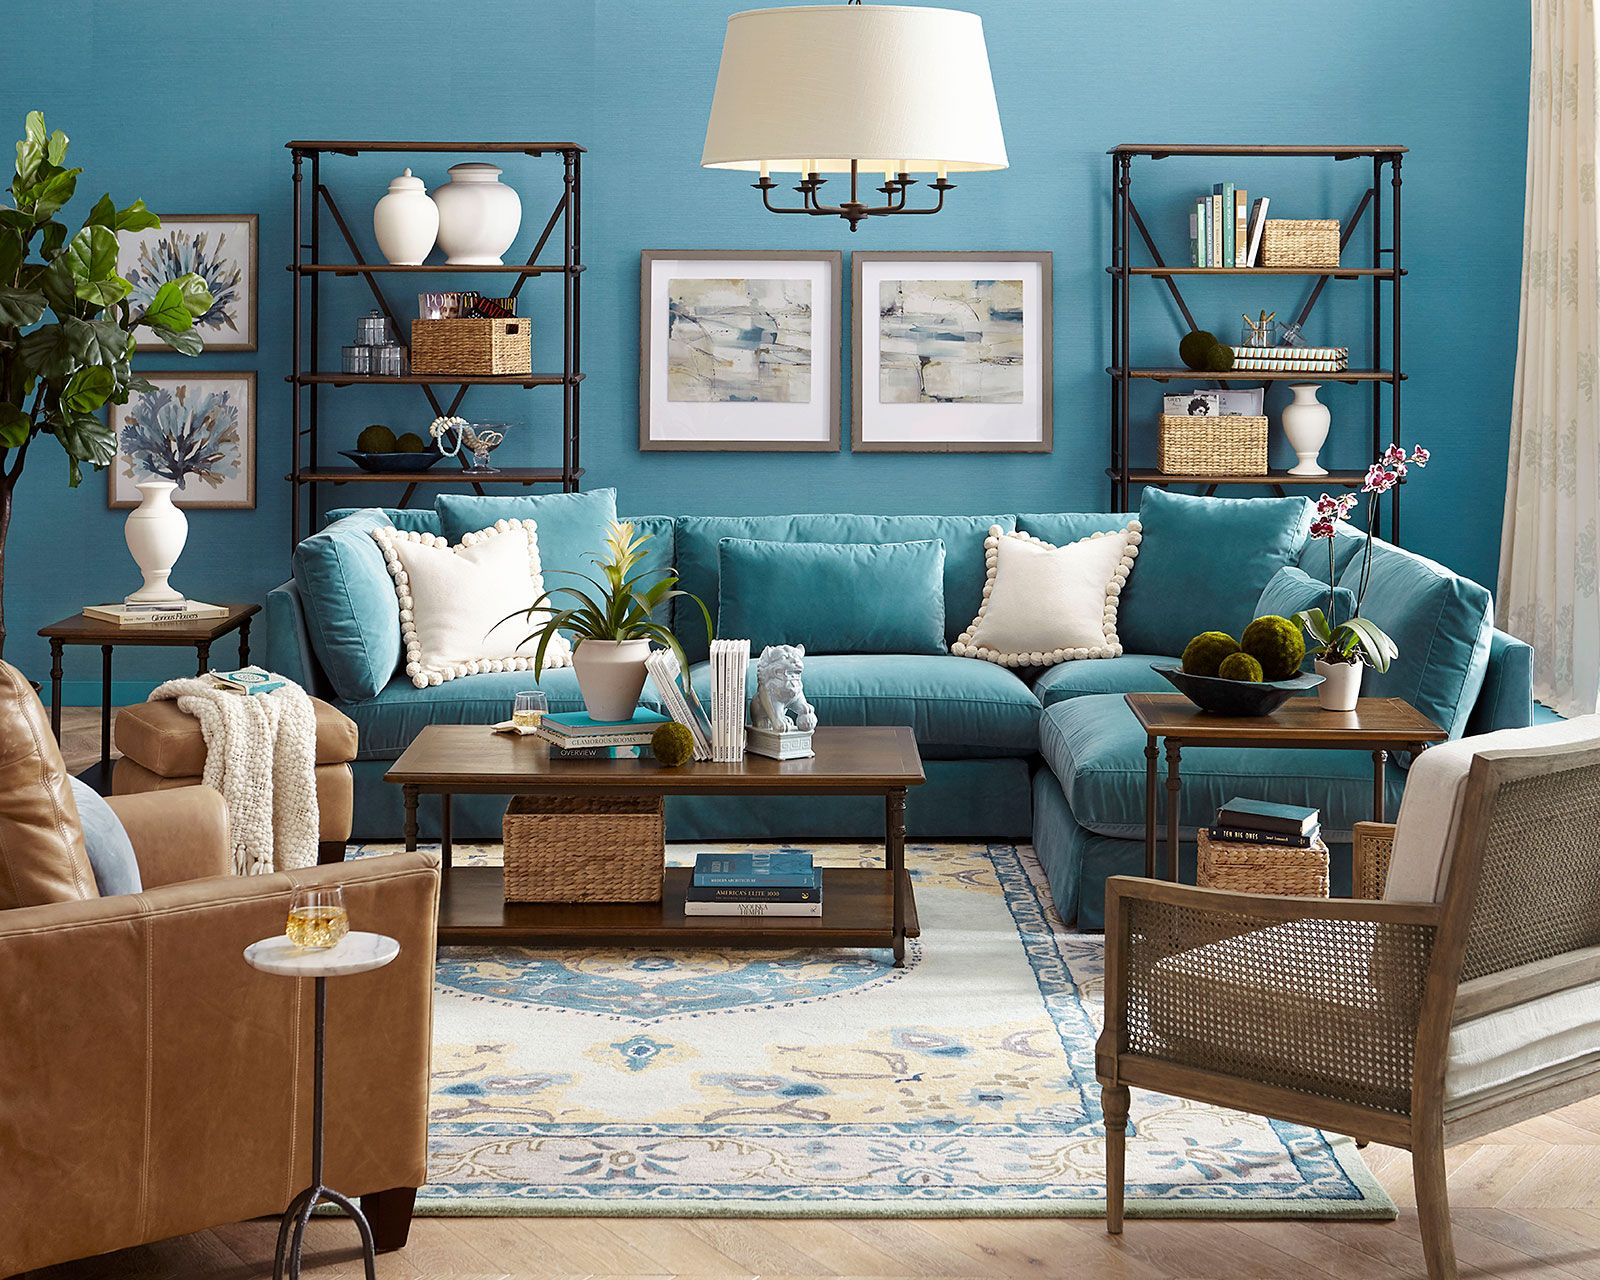 Ways To Refresh Your Home For The New Year How To Decorate In 2020 Turquoise Living Room Decor Living Room Turquoise Teal Couch Living Room #turquoise #living #room #furniture